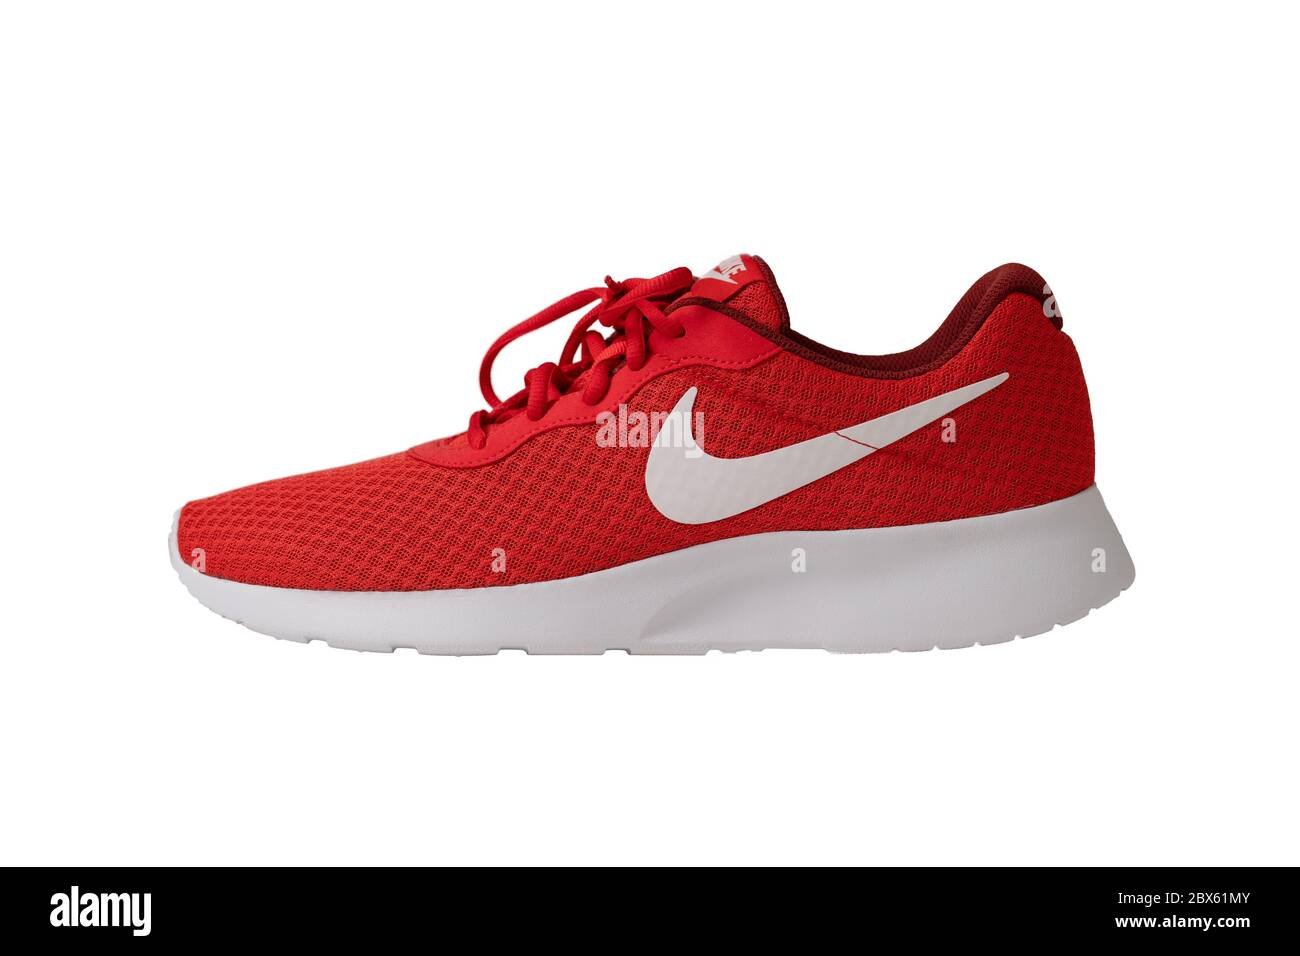 semanal ven acuerdo  Red sneakers of Nike brand. Shoes with laces for jogging and fitness.  Stylish youth model. Object cut out on white background. Side view. May,  2019 Stock Photo - Alamy